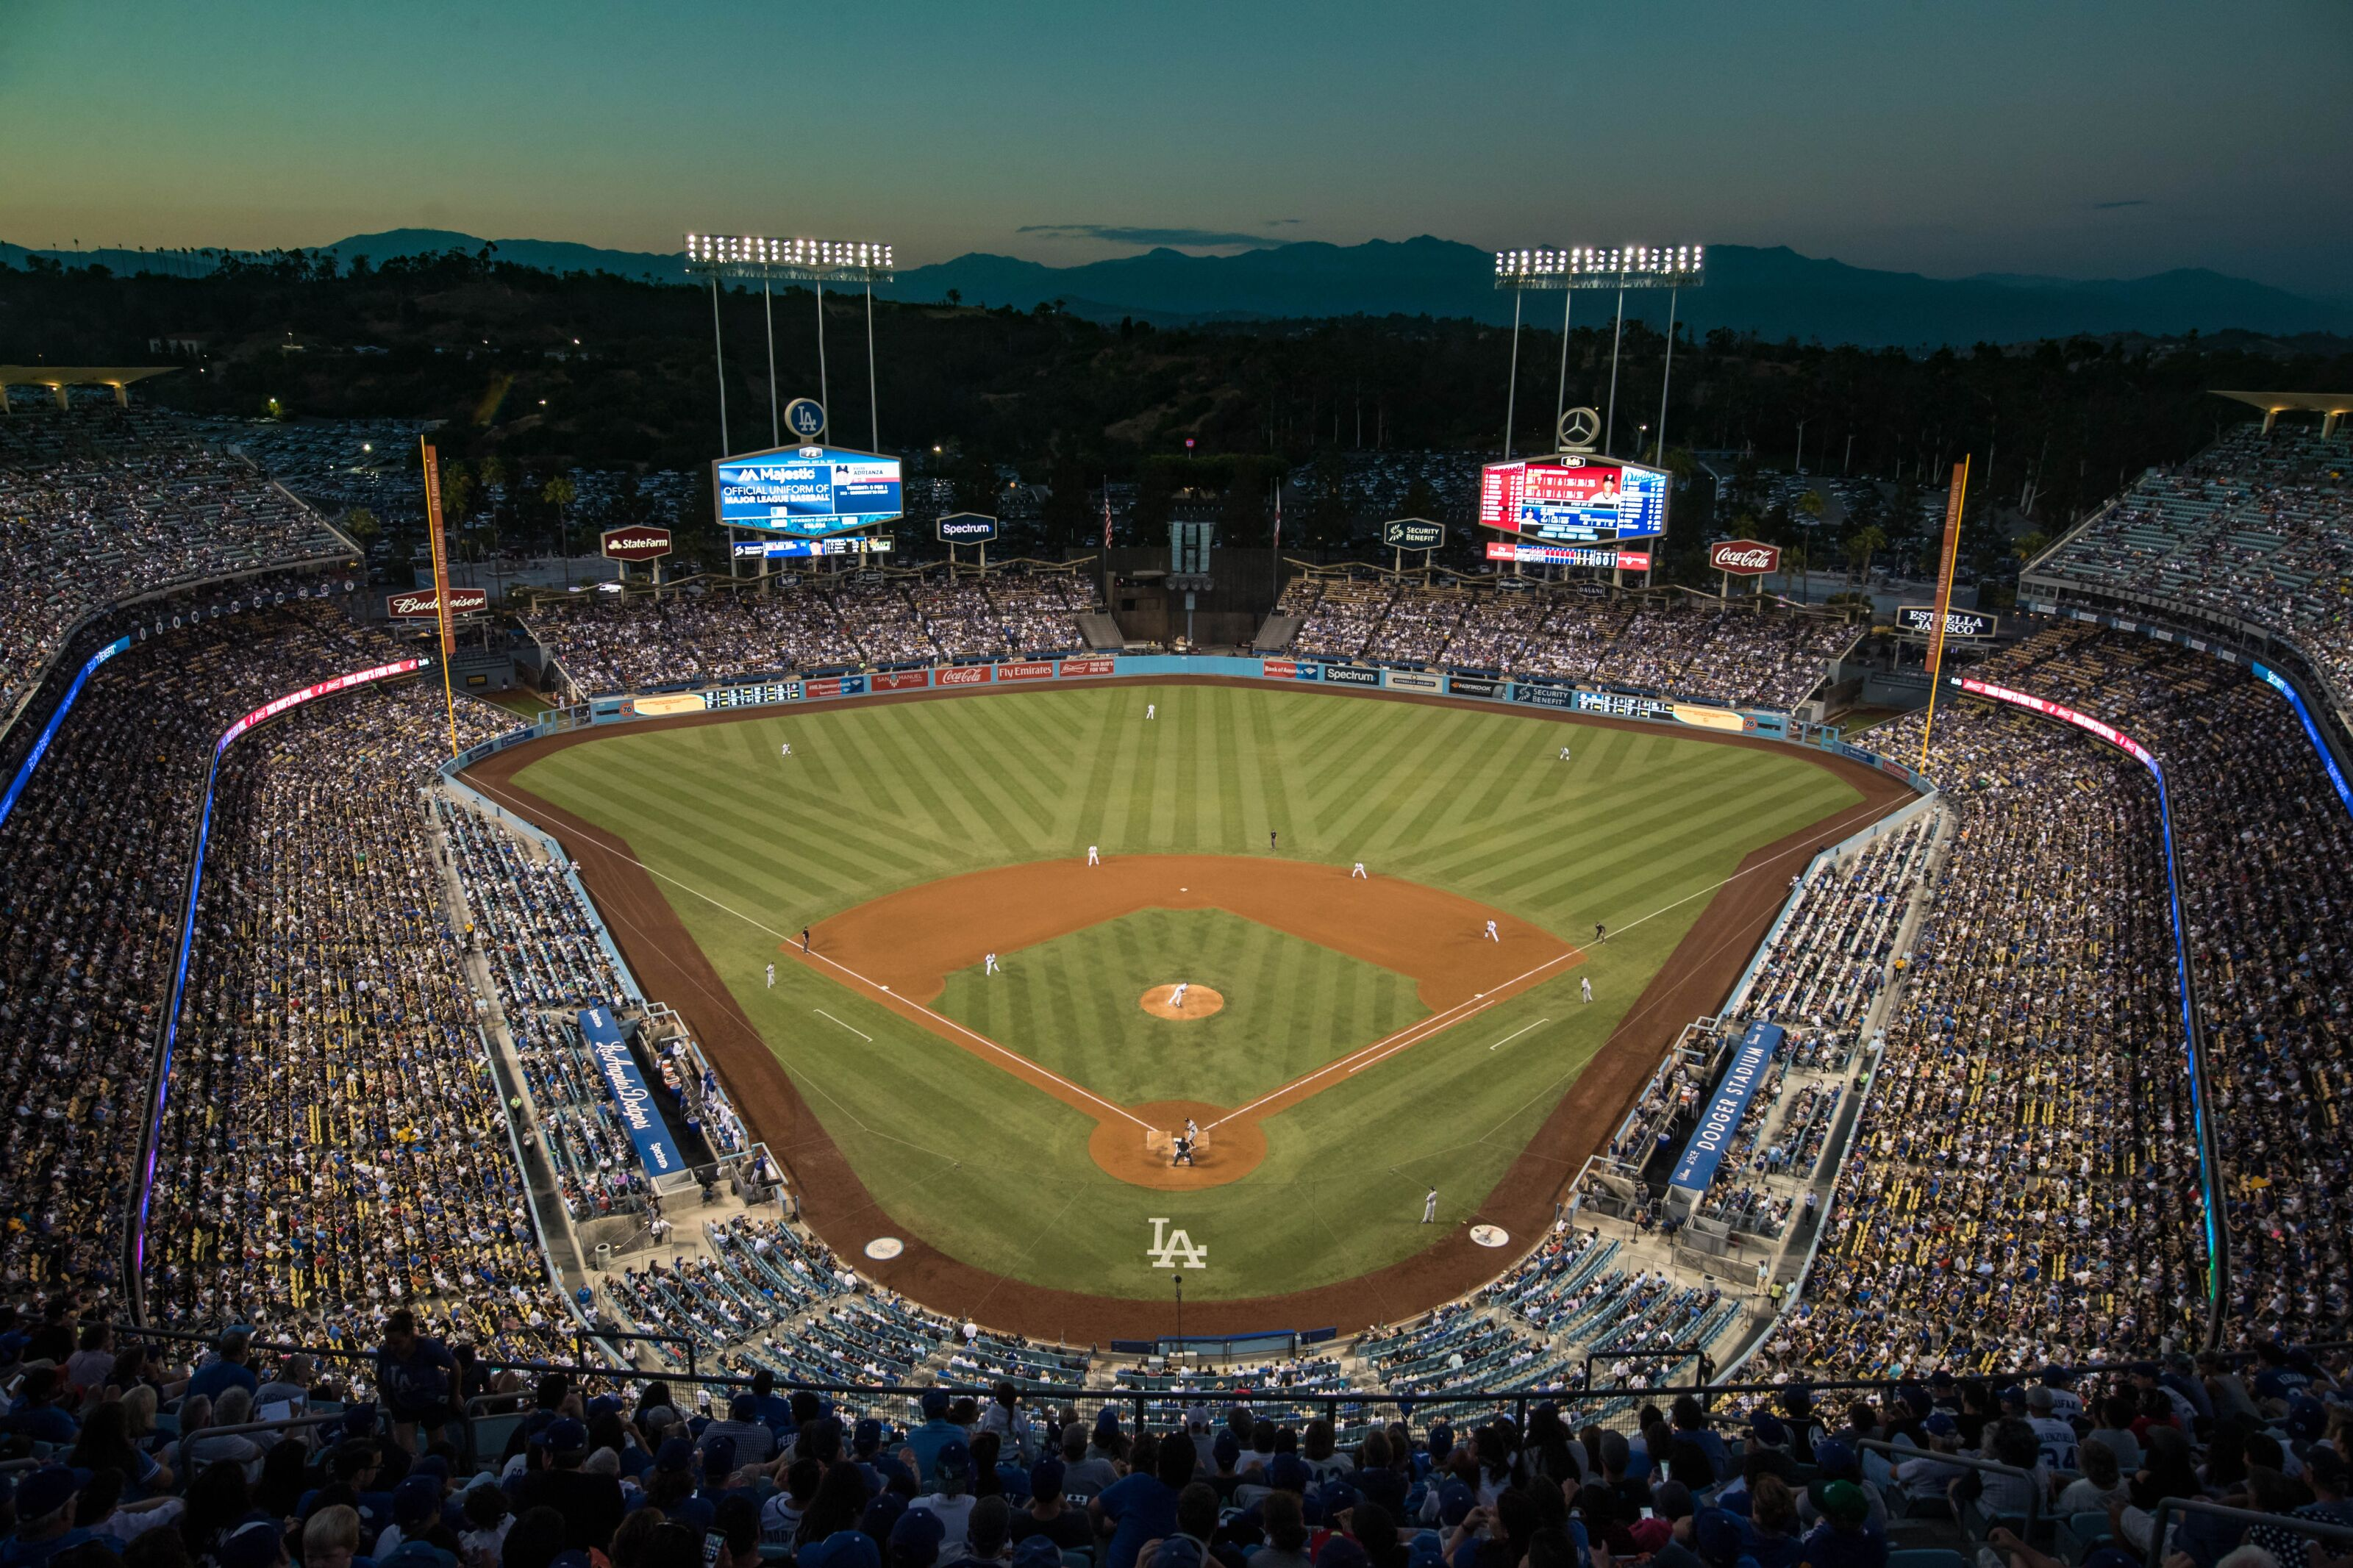 LOS ANGELES, CA - JULY 26: A general view of Dodger Stadium during a game between the Los Angeles Dodgers and Minnesota Twins on July 26, 2017 at Dodger Stadium in Los Angeles, California The Dodgers defeated the Twins 6-5. (Photo by Brace Hemmelgarn/Minnesota Twins/Getty Images) *** Local Caption ***